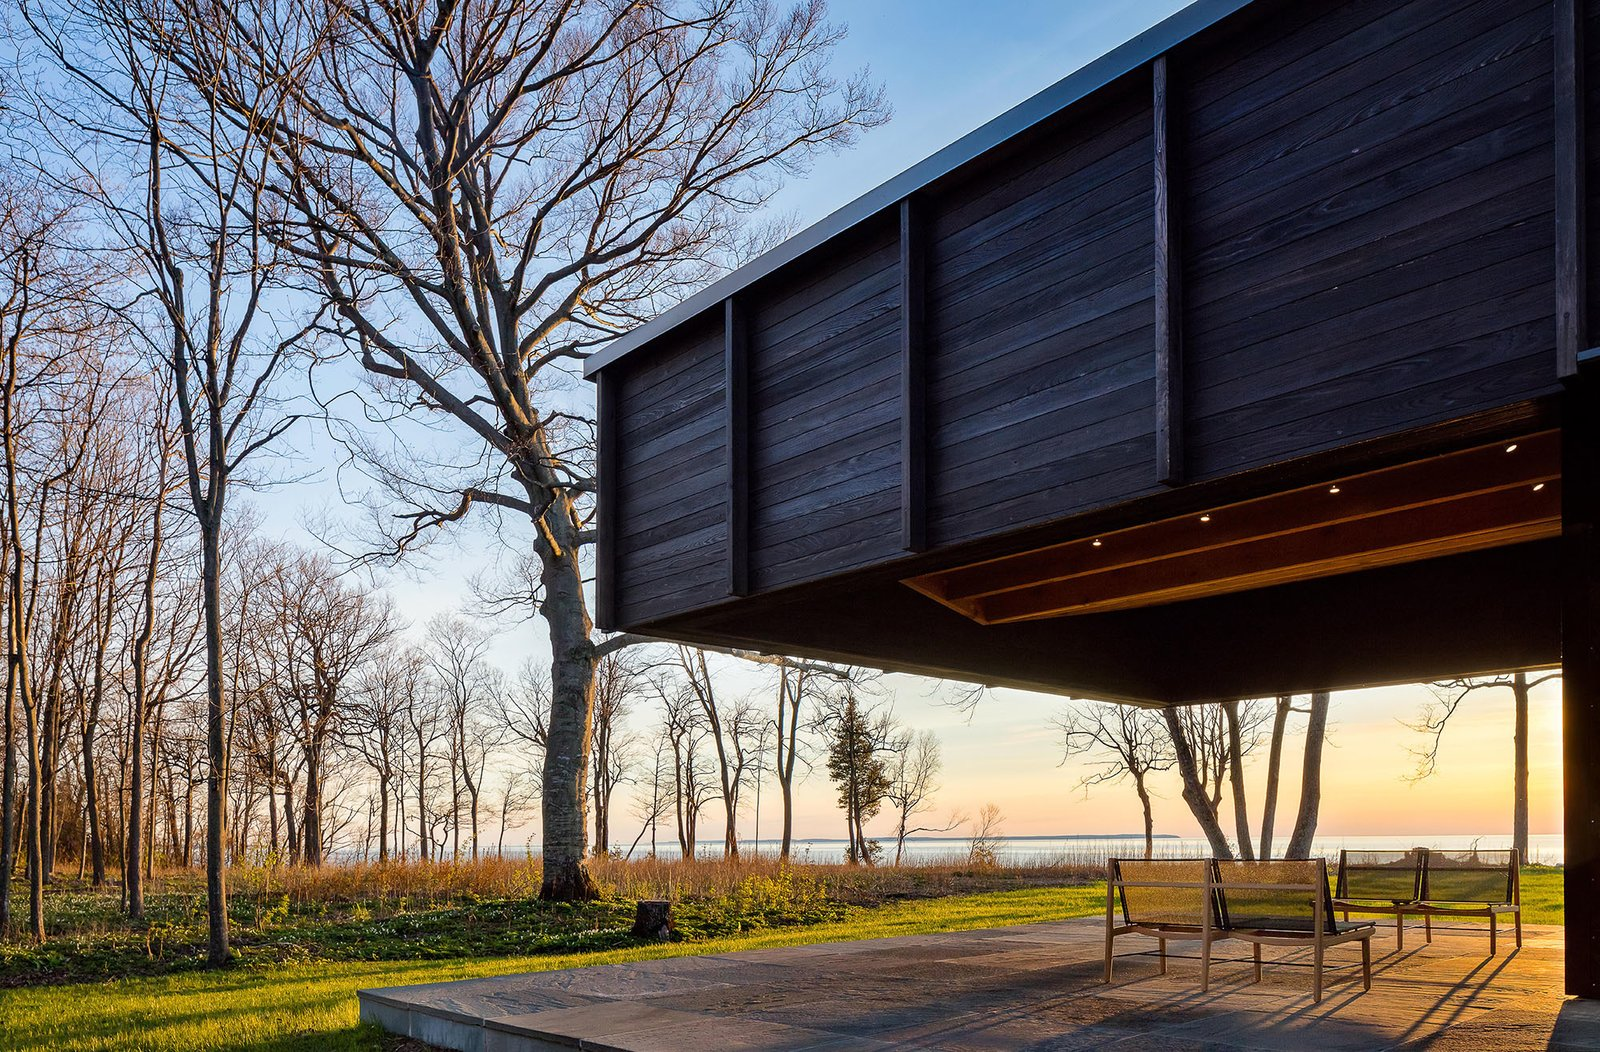 Outdoor, Hardscapes, Grass, Trees, Stone Patio, Porch, Deck, and Woodland The dramatic cantilever provides shade and protection, while leaving views to the lake plentiful.  Photo 11 of 12 in A Dramatic Cantilevered Roof Creates a Spacious Terrace Overlooking Lake Michigan